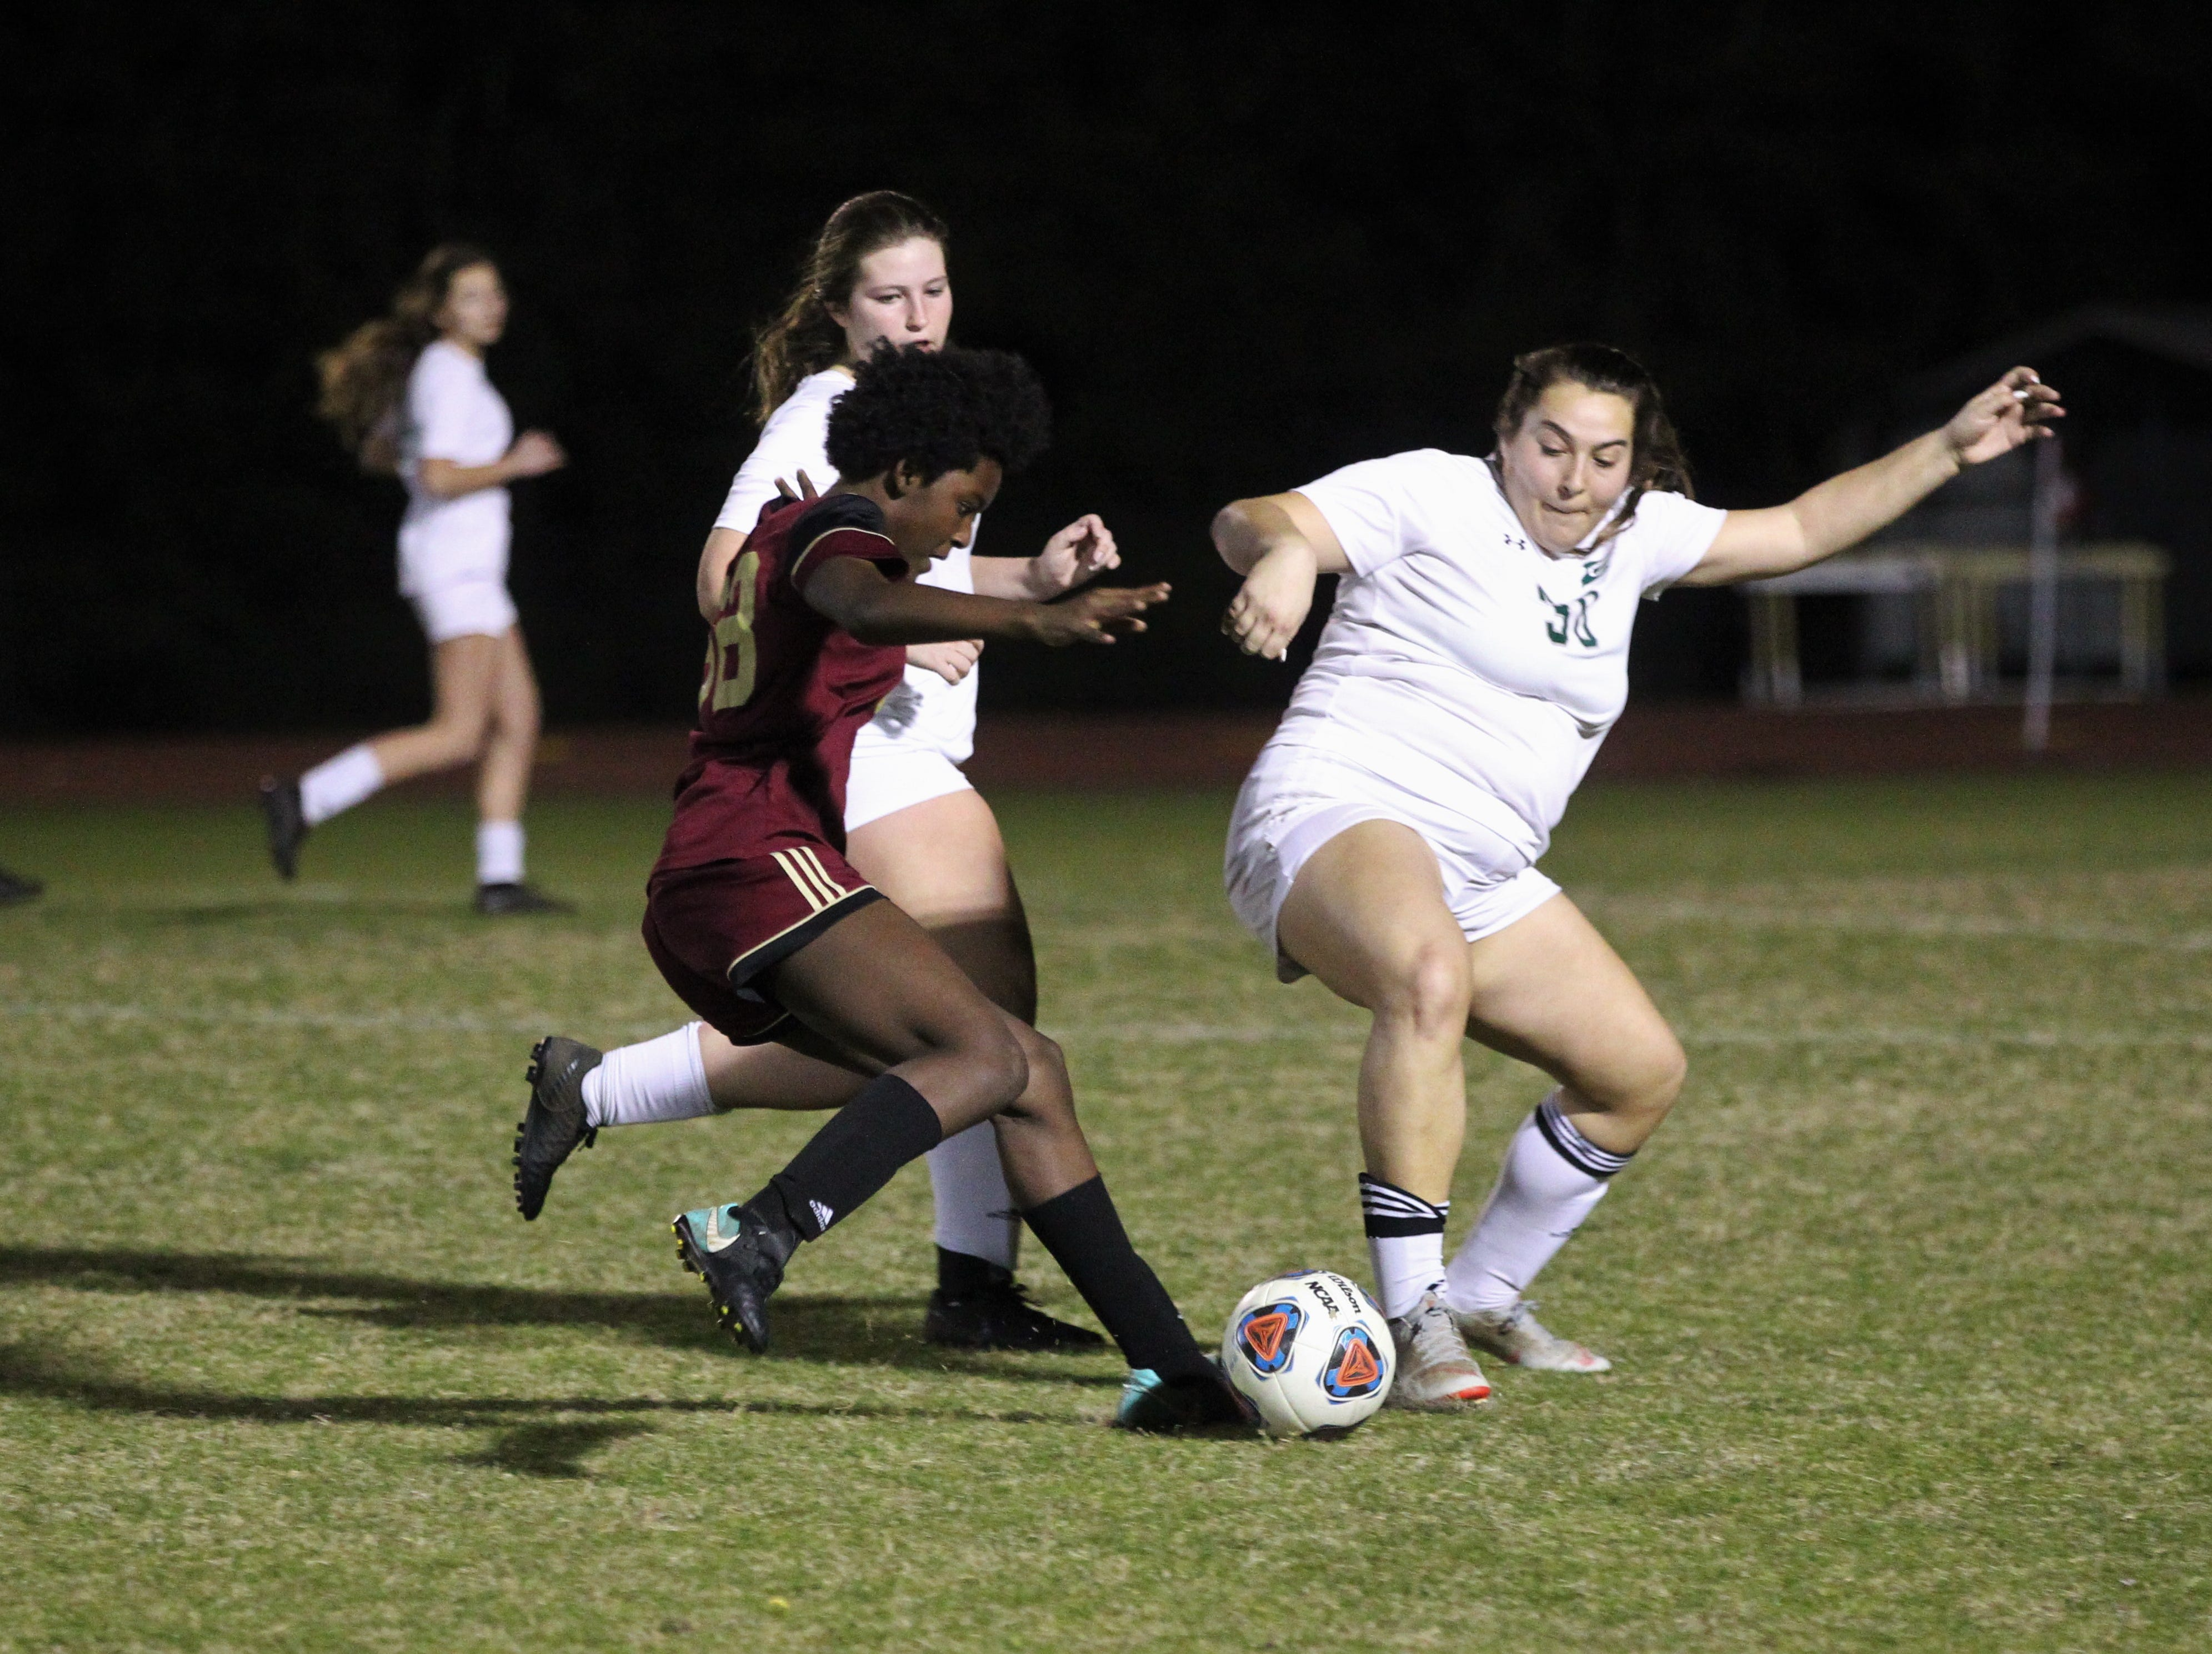 Florida High's Jordyn Still has her dribble disrupted as South Walton edged the Seminoles 5-4 in a penalty-kick shootout during a Region 1-2A semifinal on Feb. 8, 2019.